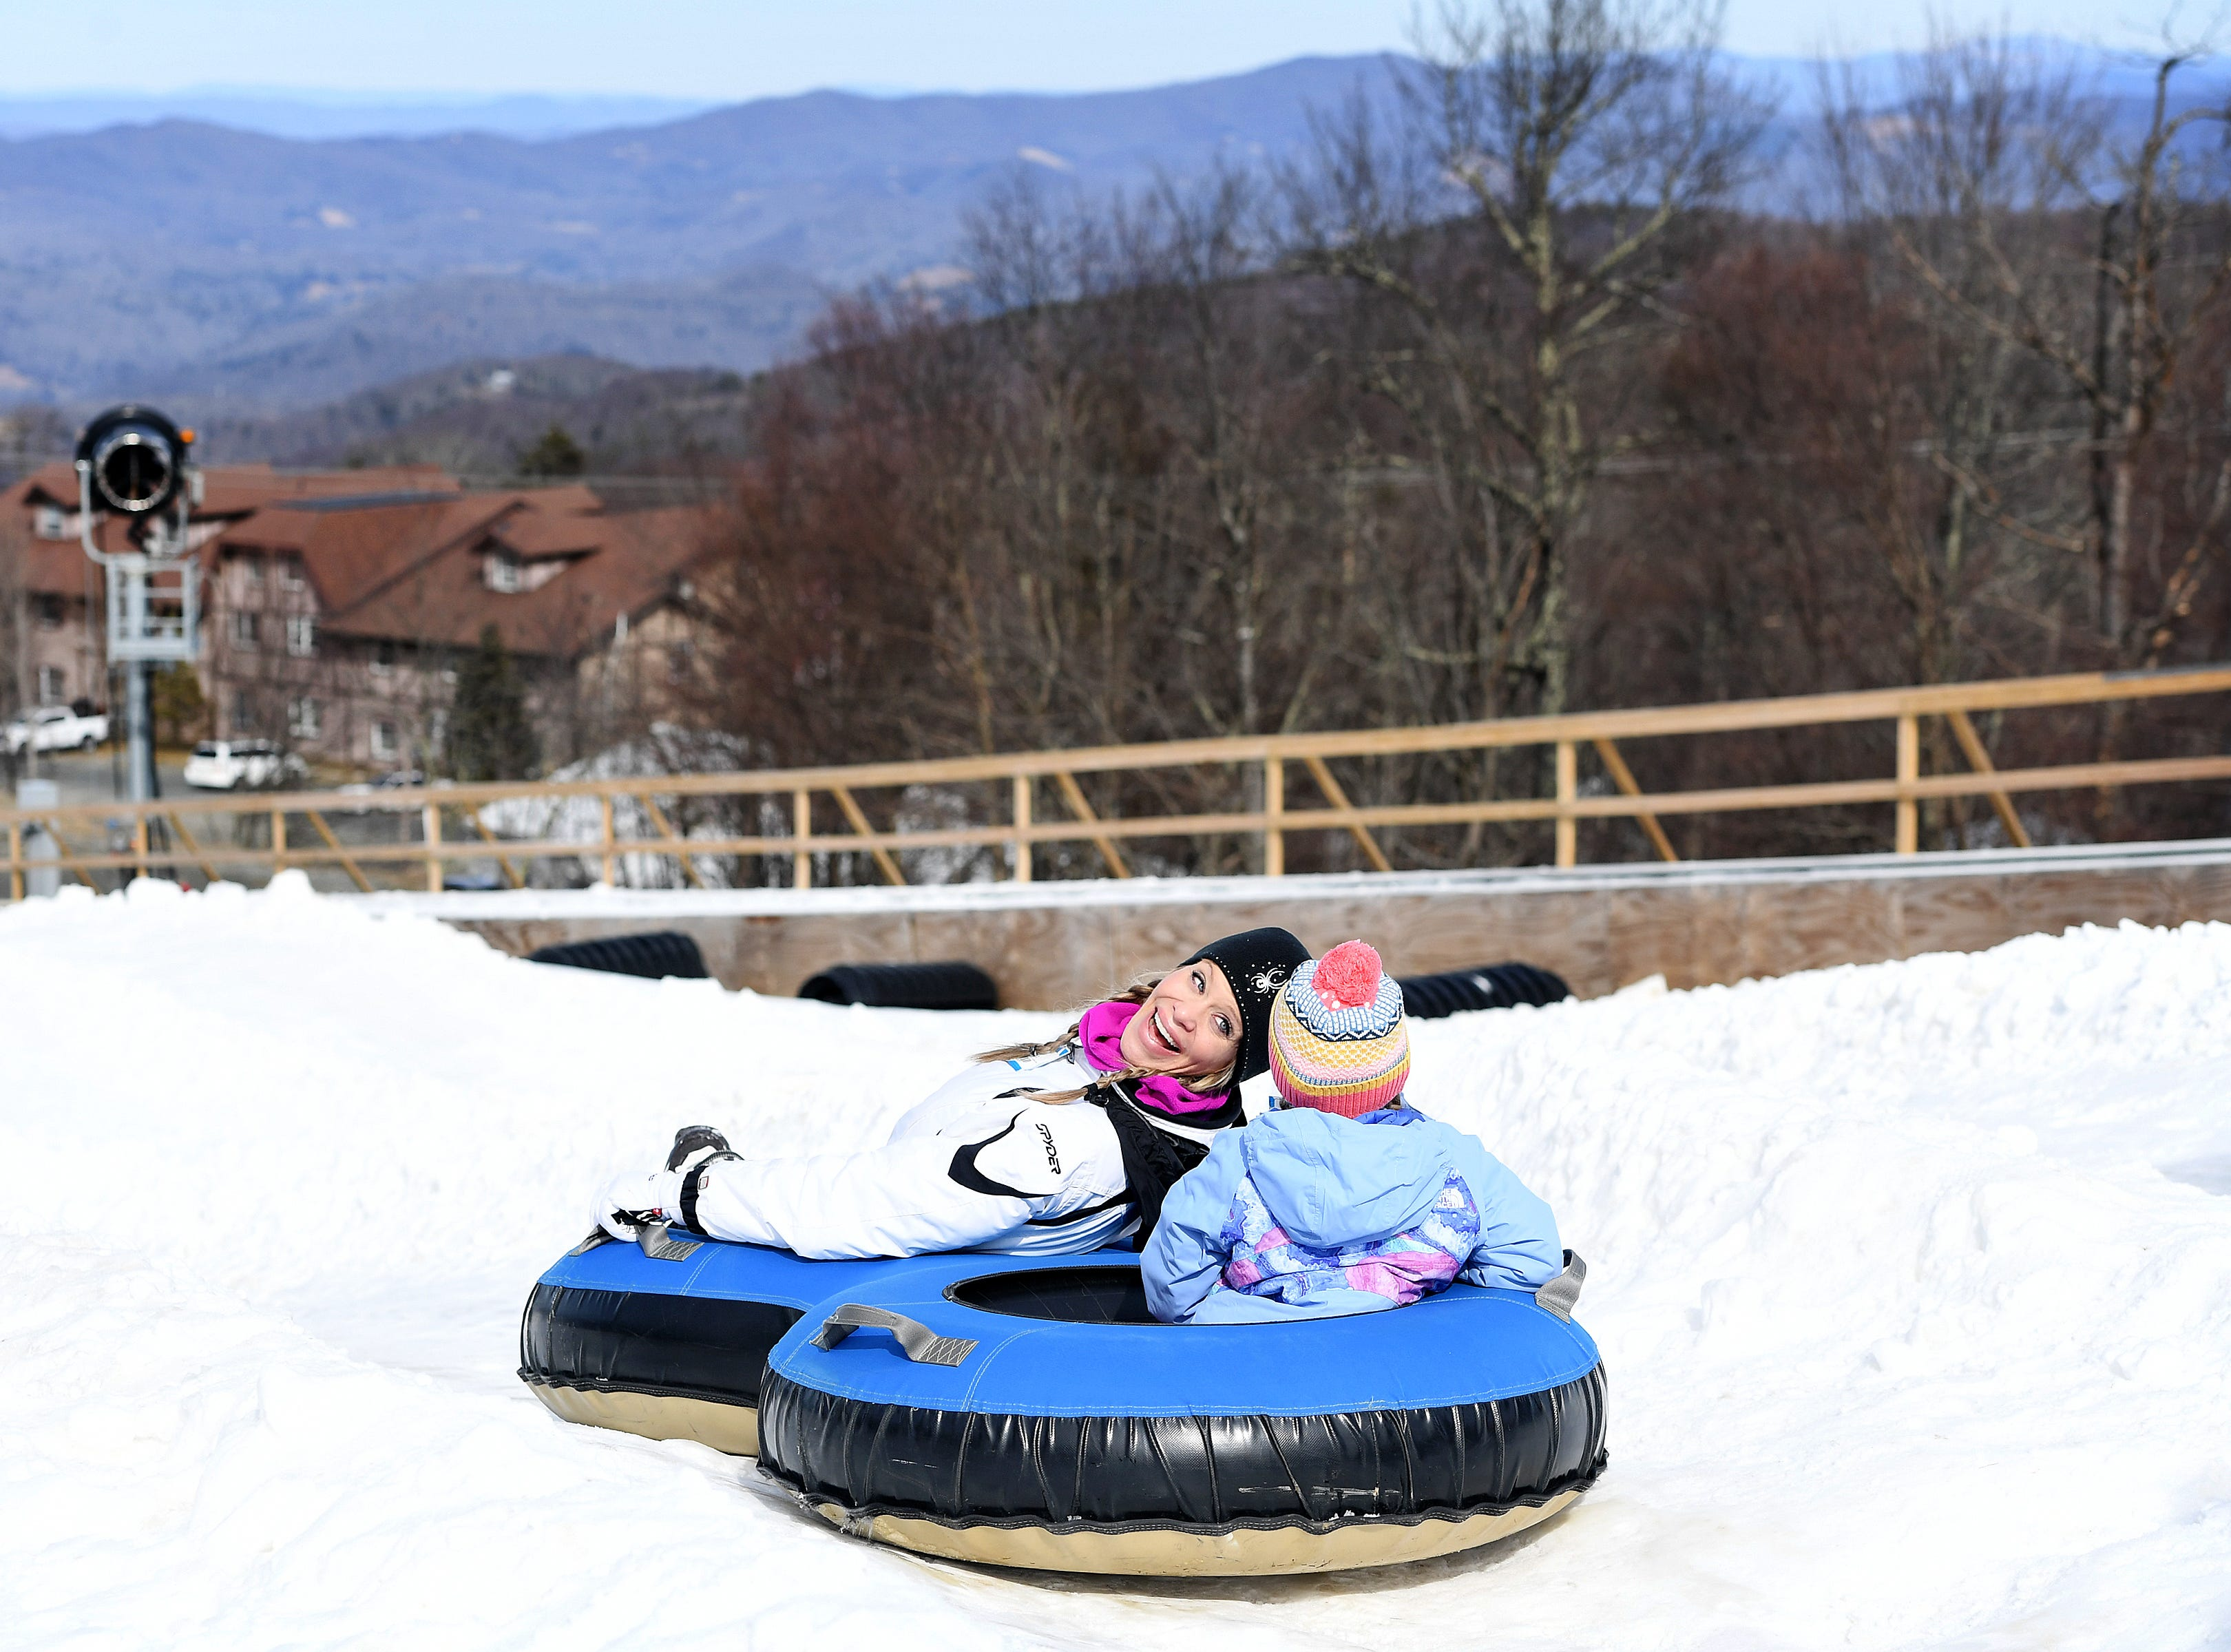 Courtney Hilliard looks back at her daughter, Madeline, 5, of Cherryville, North Carolina, as they prepare to make their way down a tubing run at  Beech Mountain Resort in Beech Mountain on Friday, Jan. 26, 2018. The resort is celebrating its 50th birthday this year.